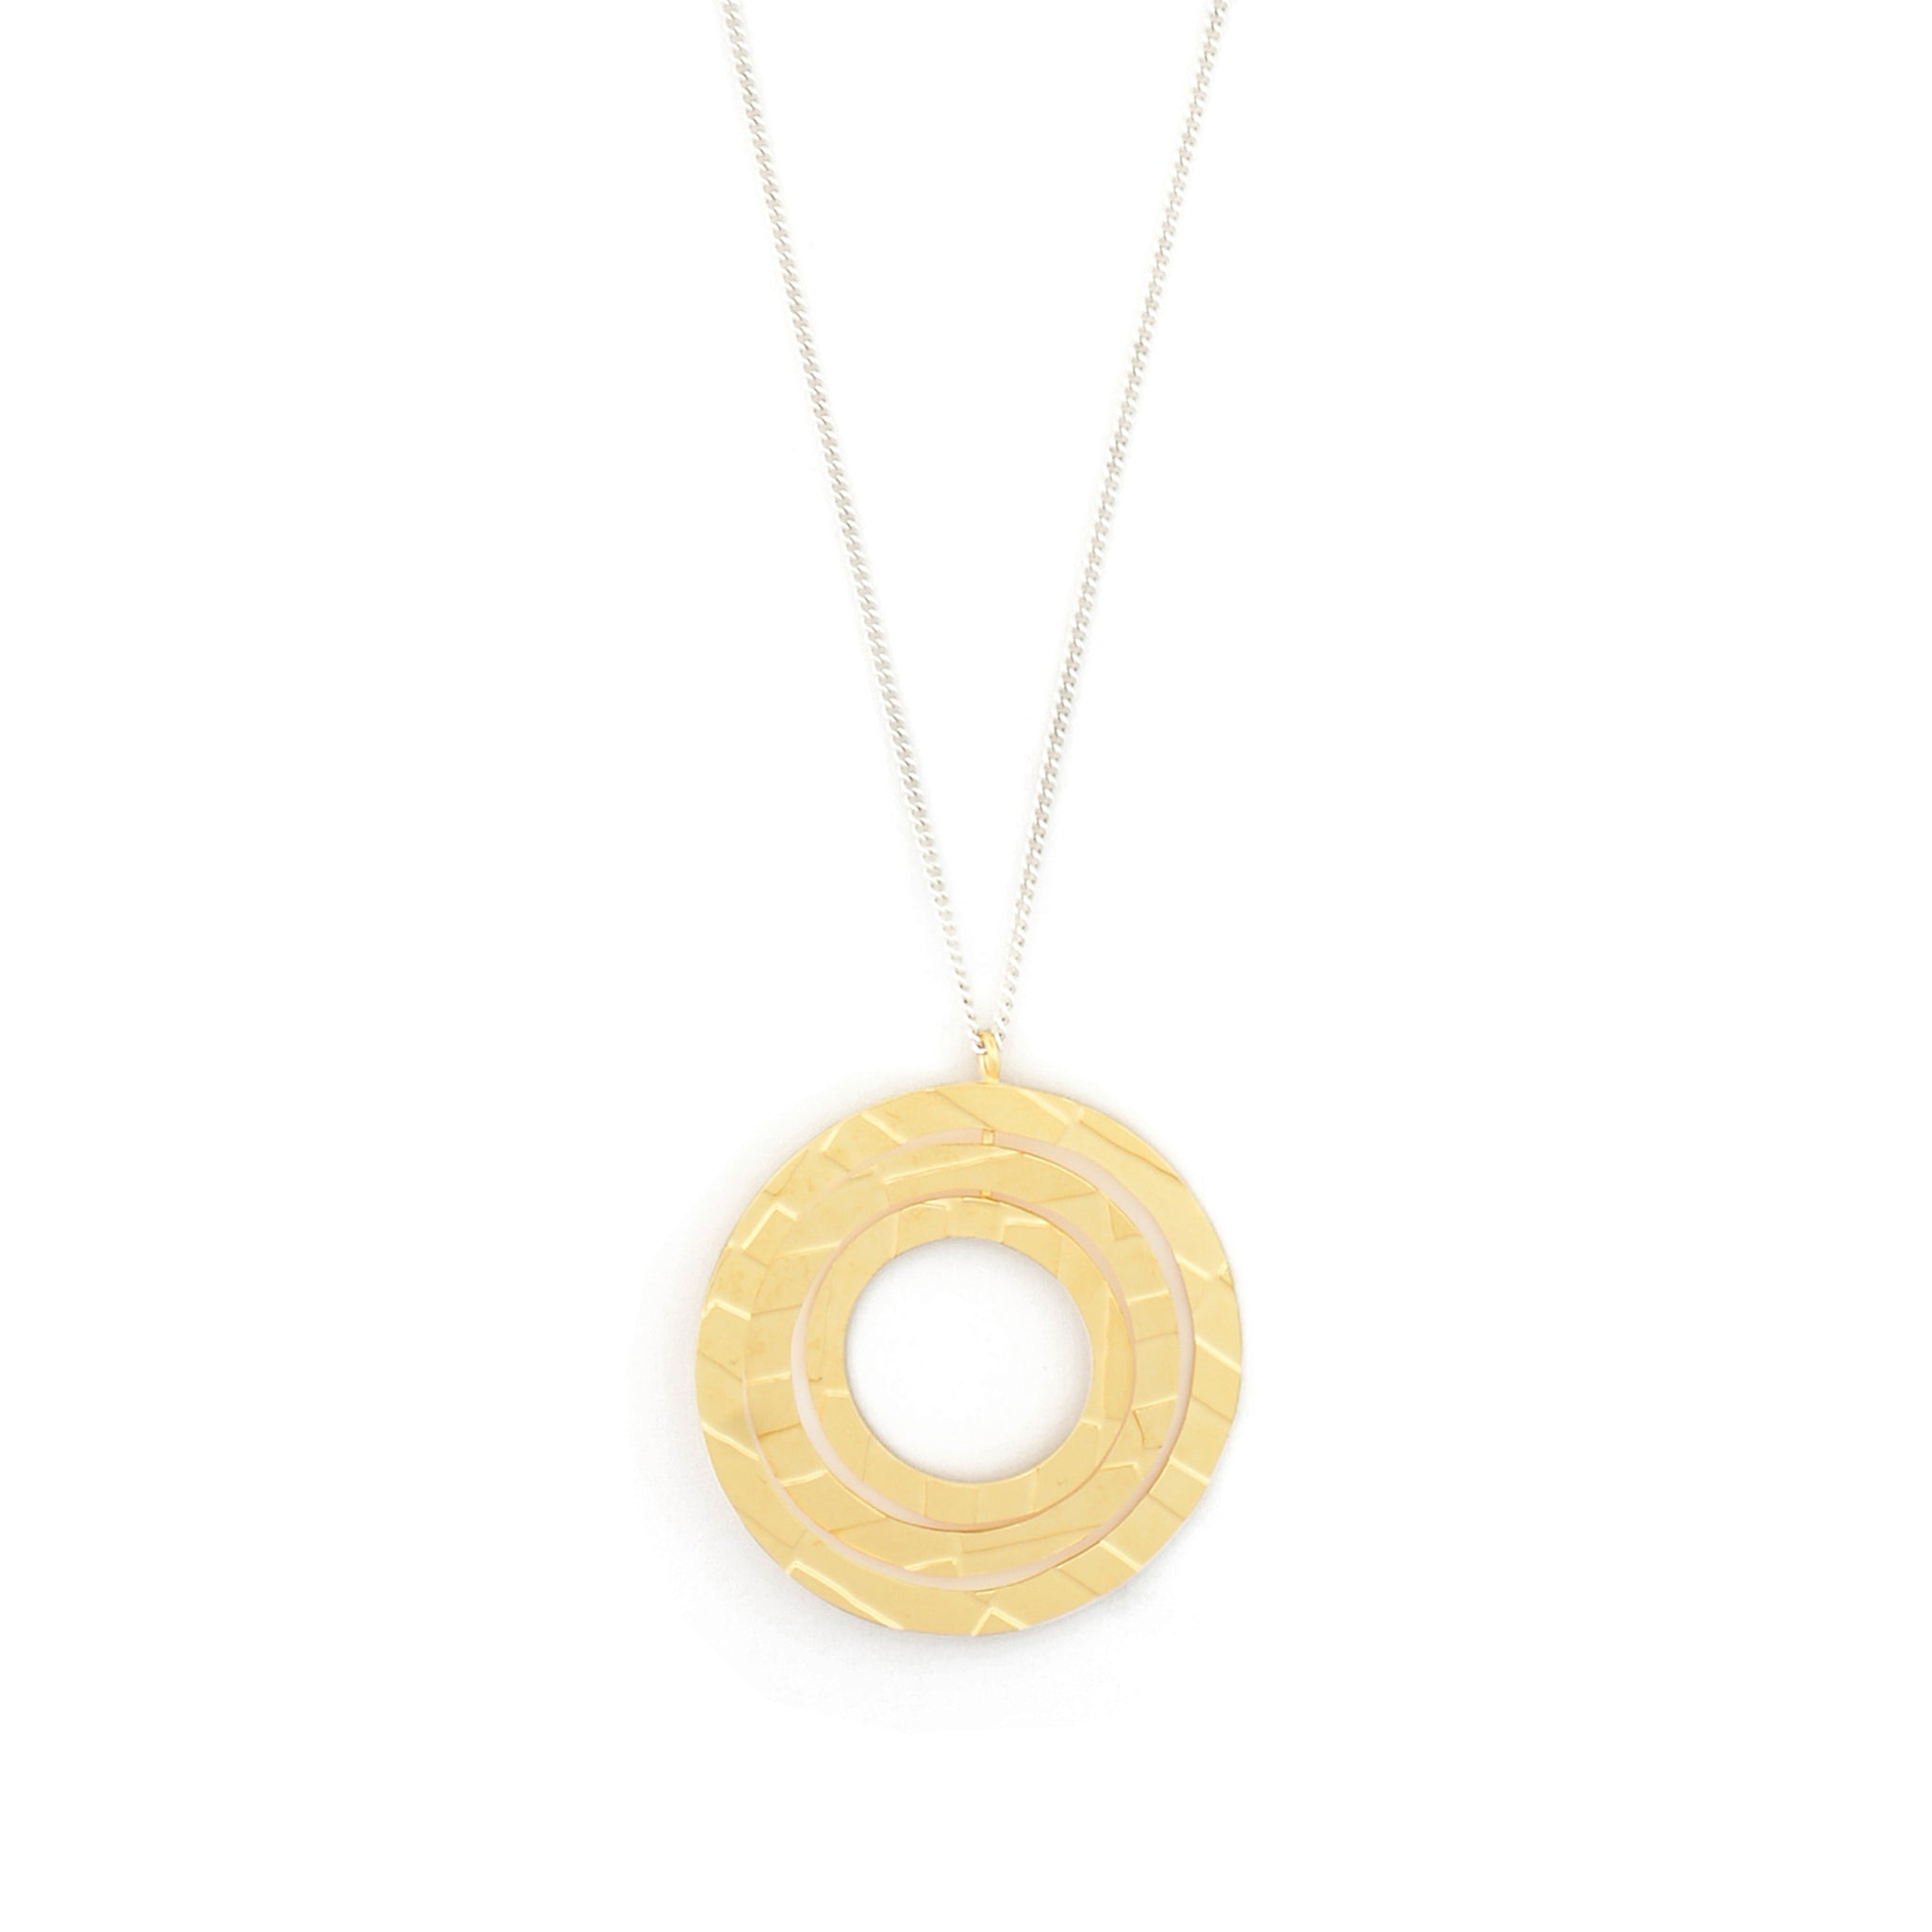 Long Necklace with etched circular Pendant